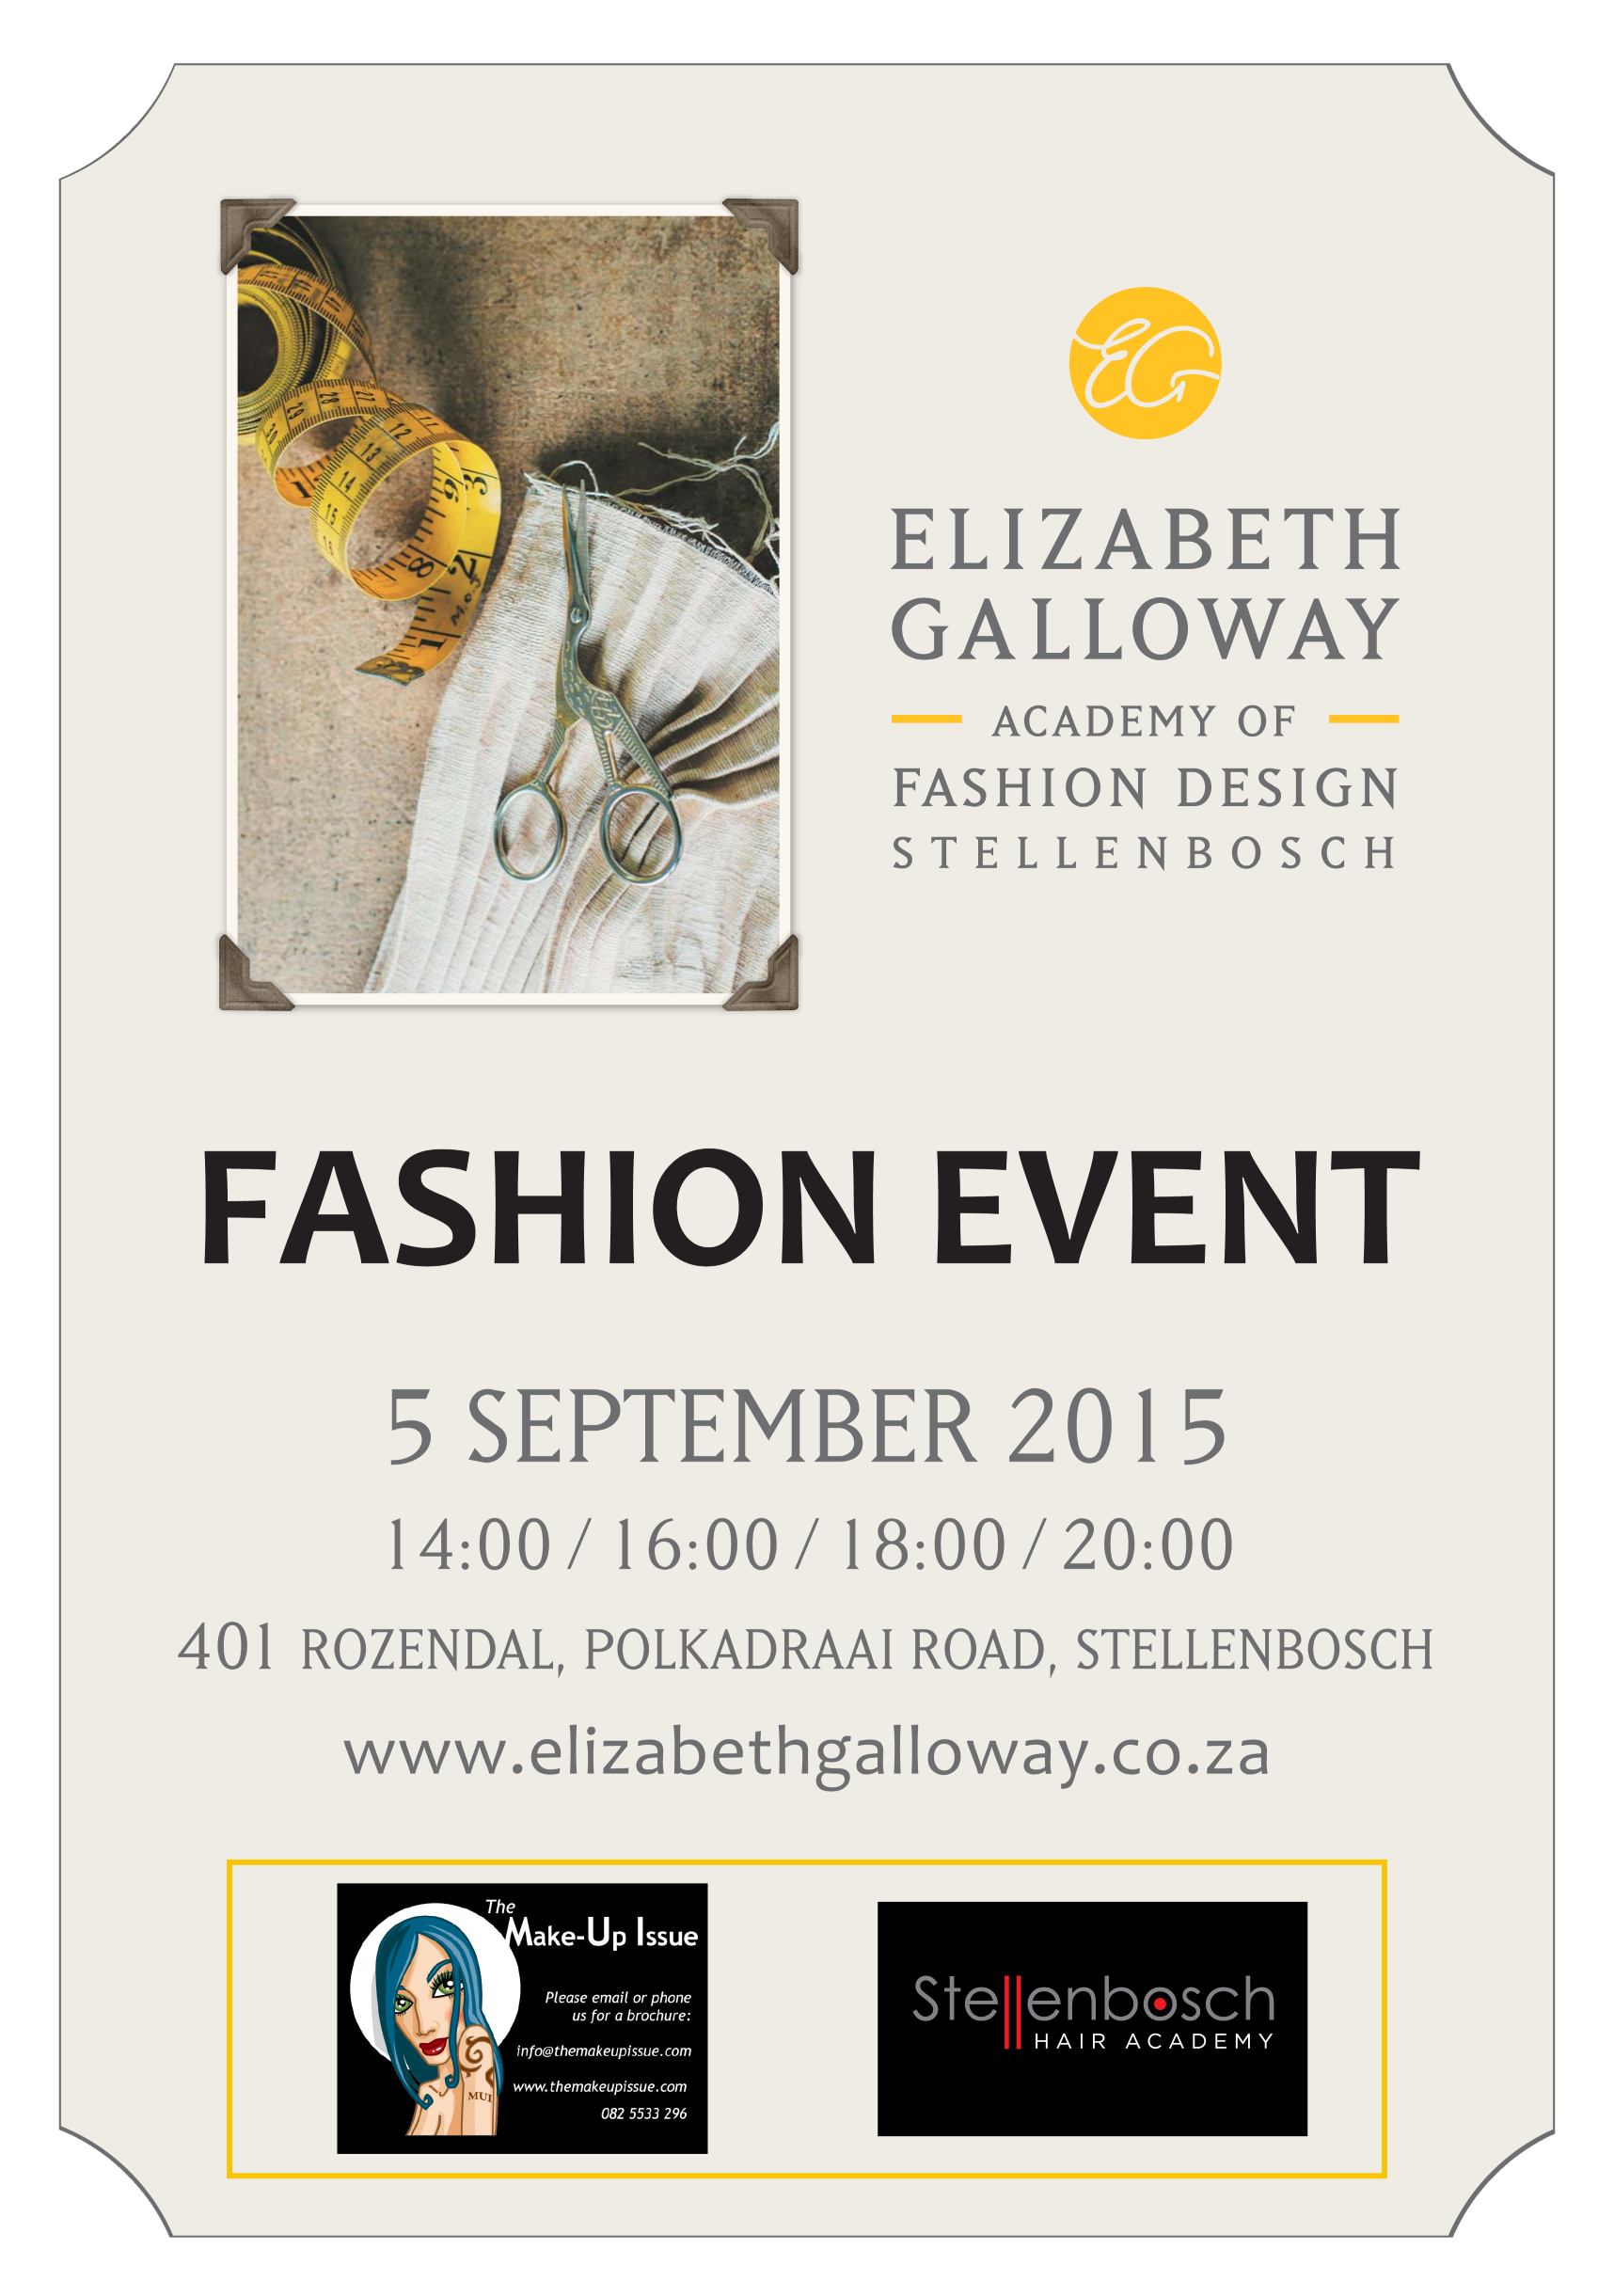 ! EG_FashionEvent2015_Poster_02 -R opt 2-1s